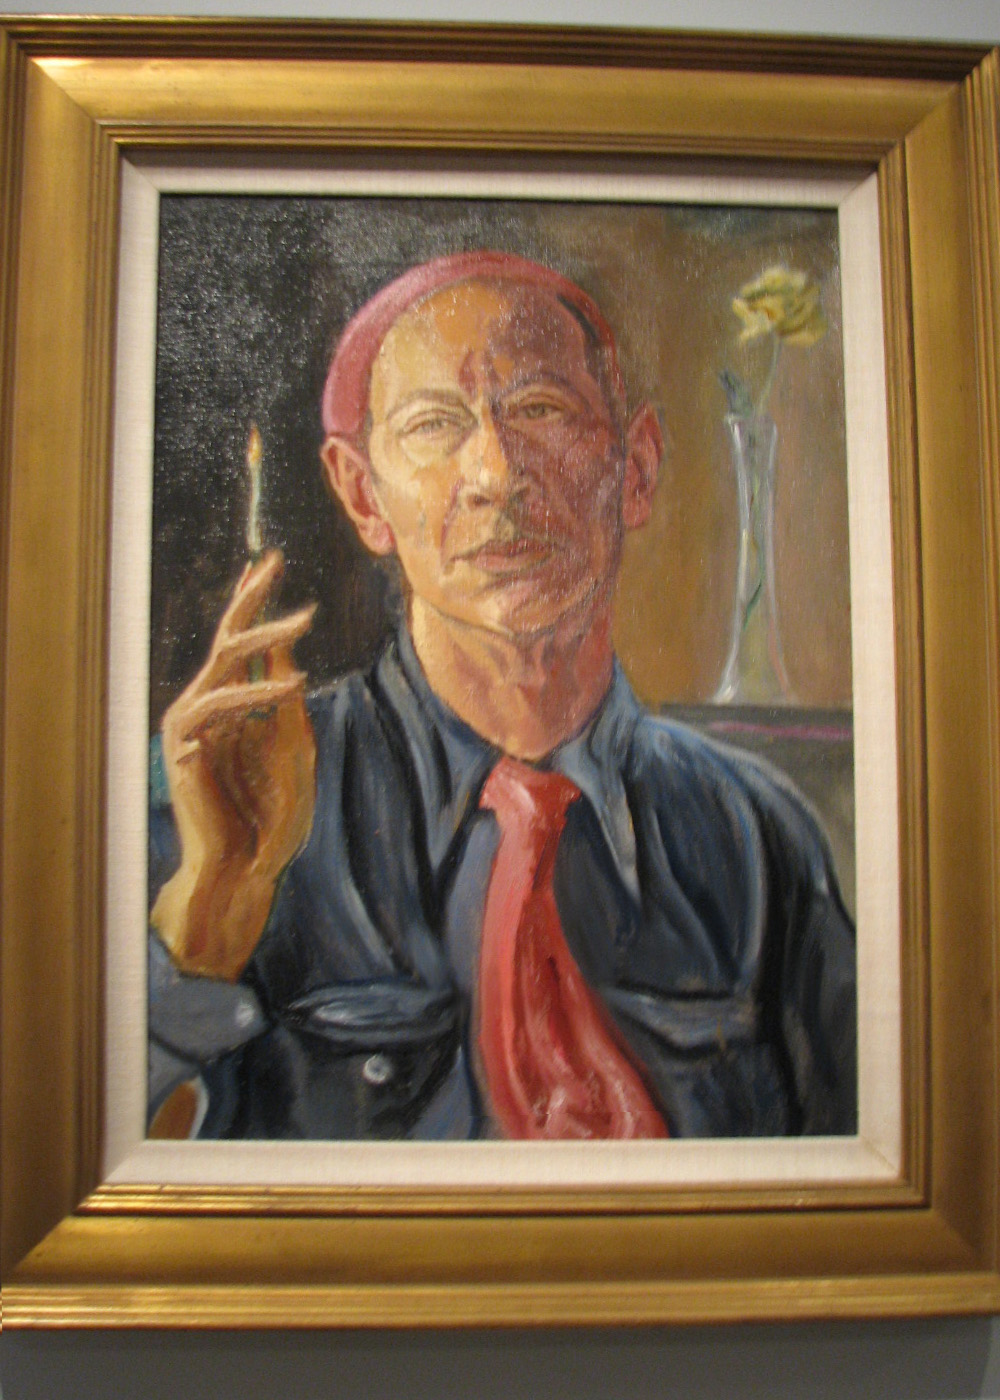 Self-Portrait-1958-E-E-Cummings